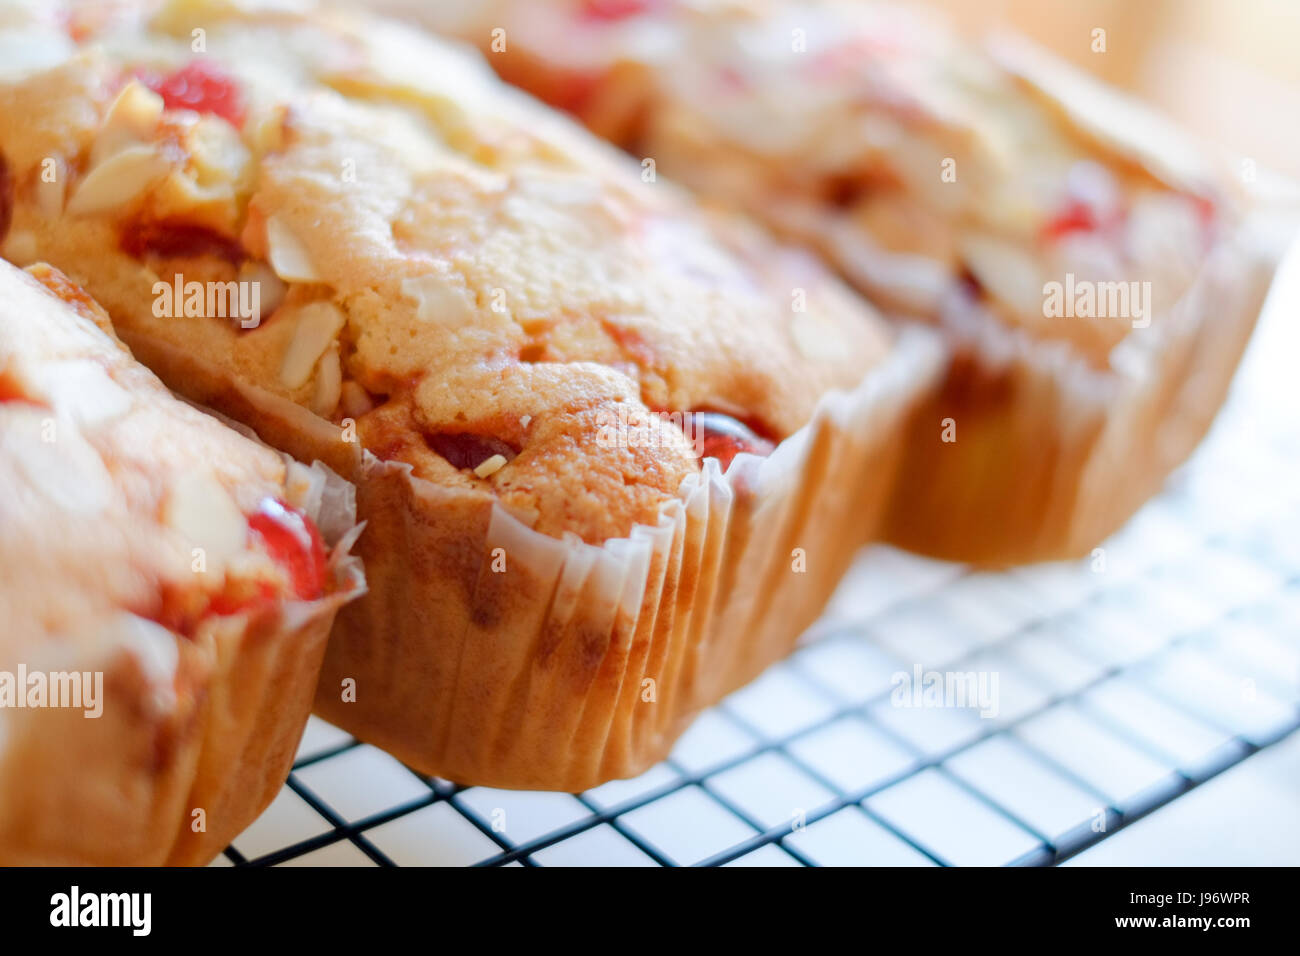 Home cooked food. Three cherry and almond cakes on a cooling rack. - Stock Image